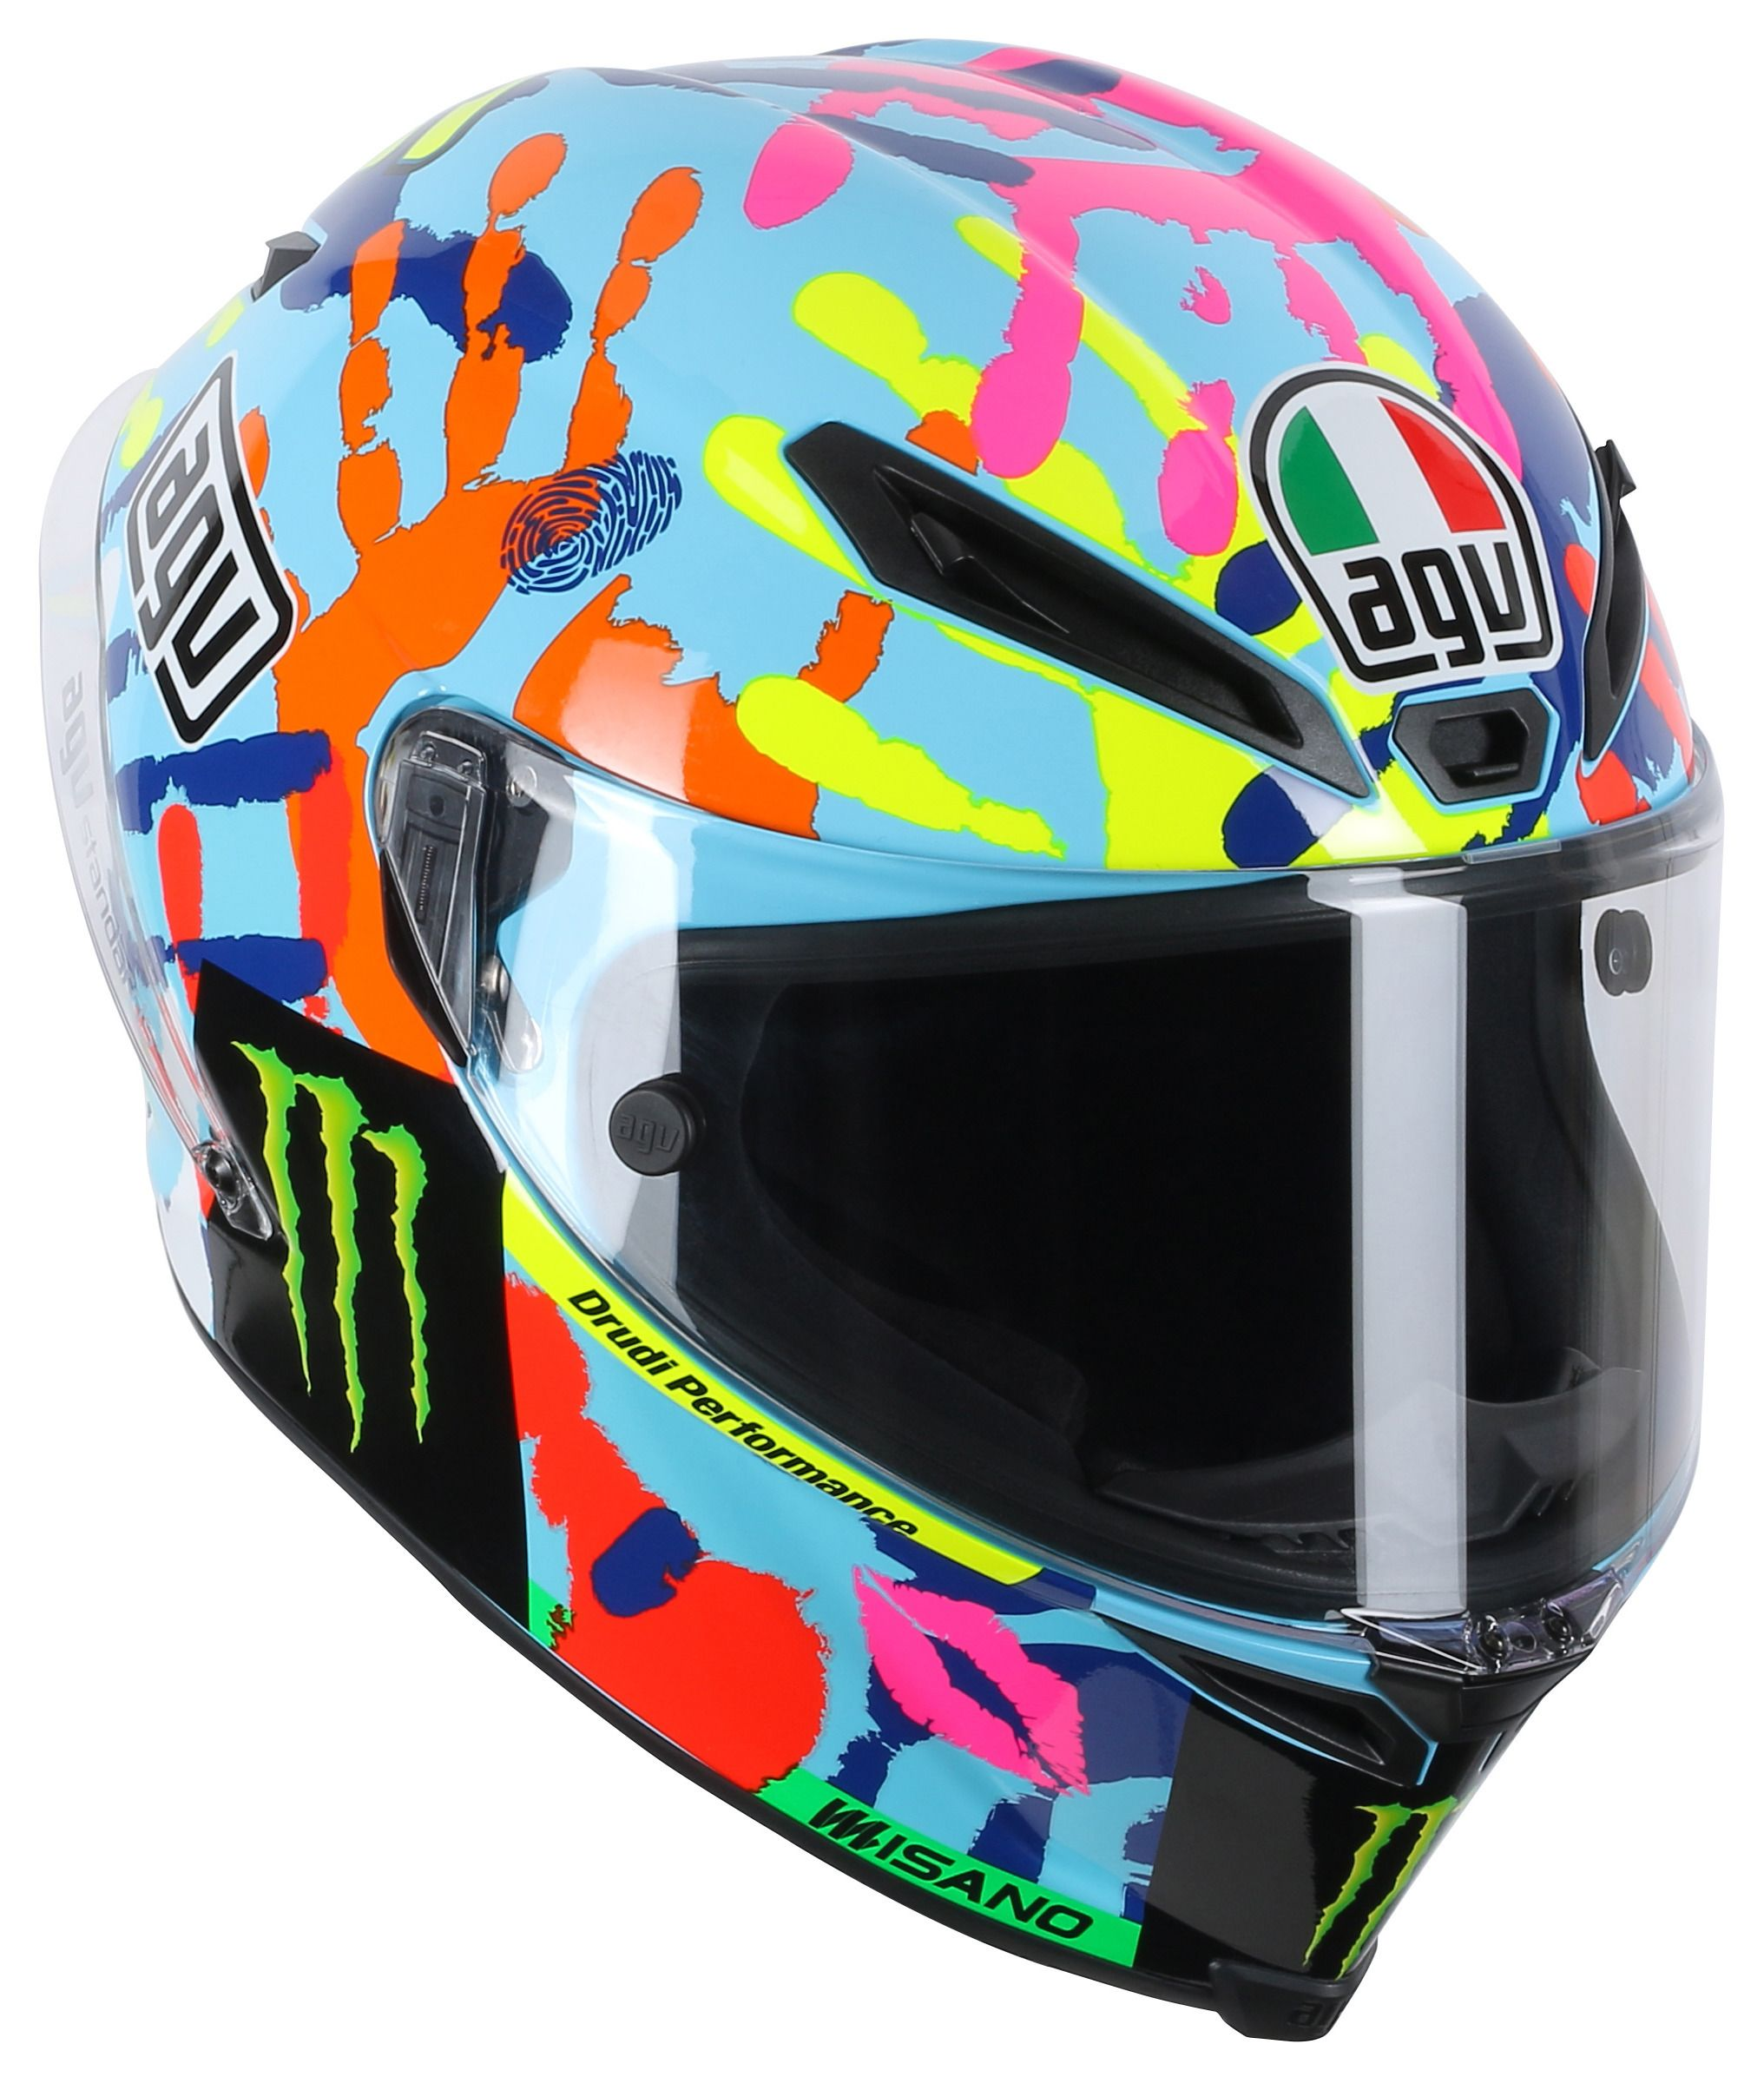 agv corsa rossi misano 2014 le helmet revzilla. Black Bedroom Furniture Sets. Home Design Ideas